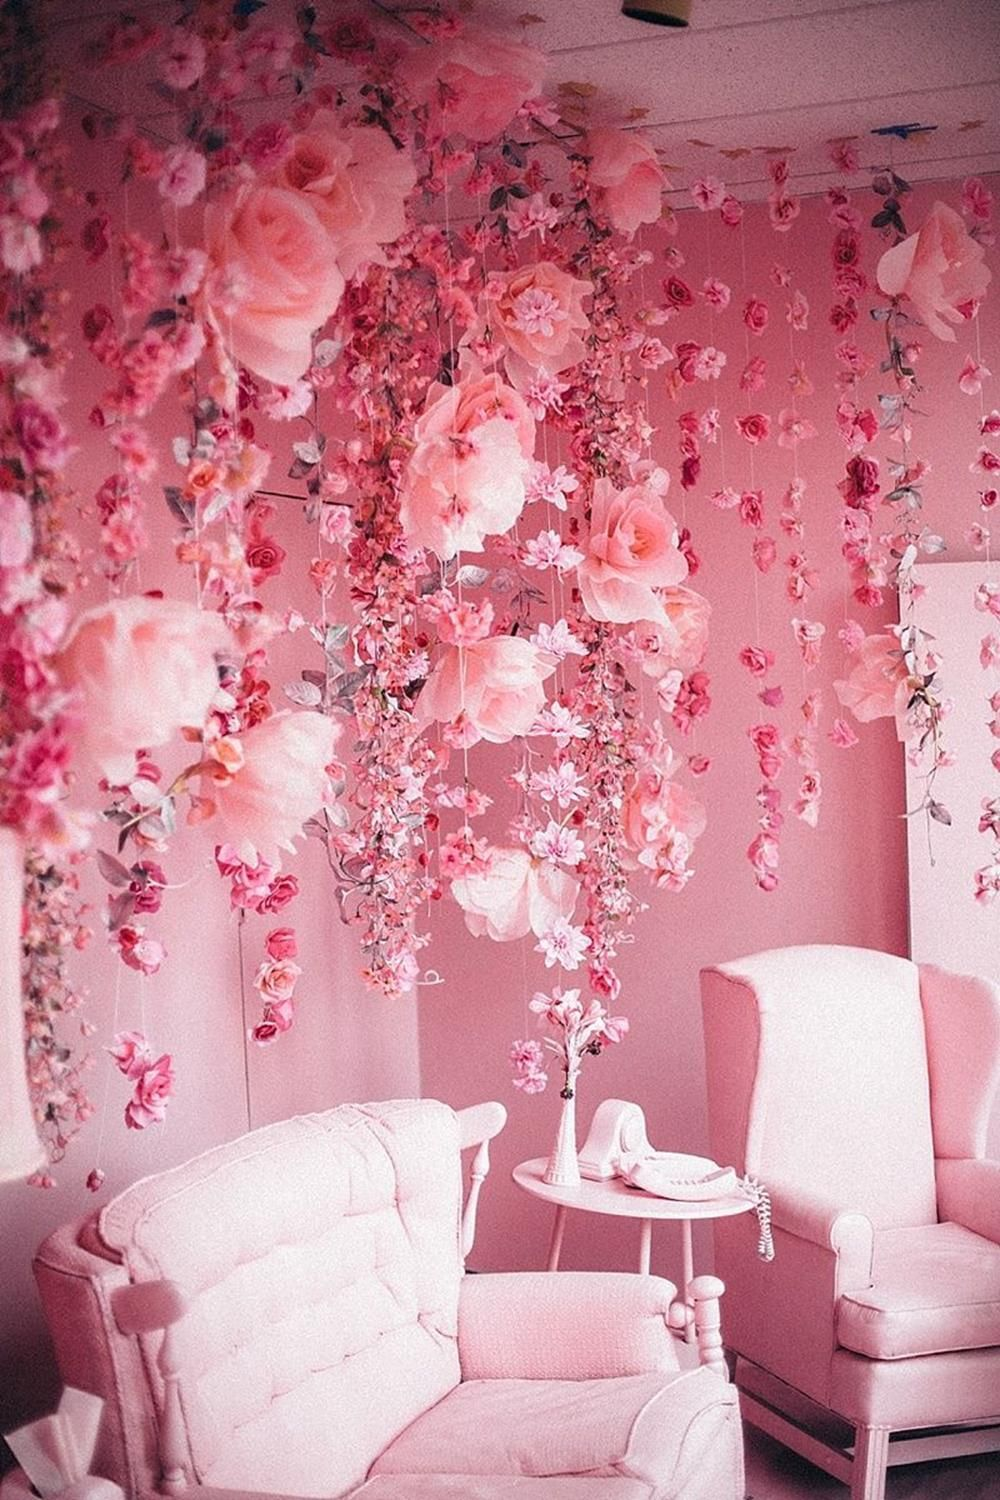 Pastel Aesthetic Room Ideas 6 In 2020 Pink Room Decor Pink Room Pink Walls